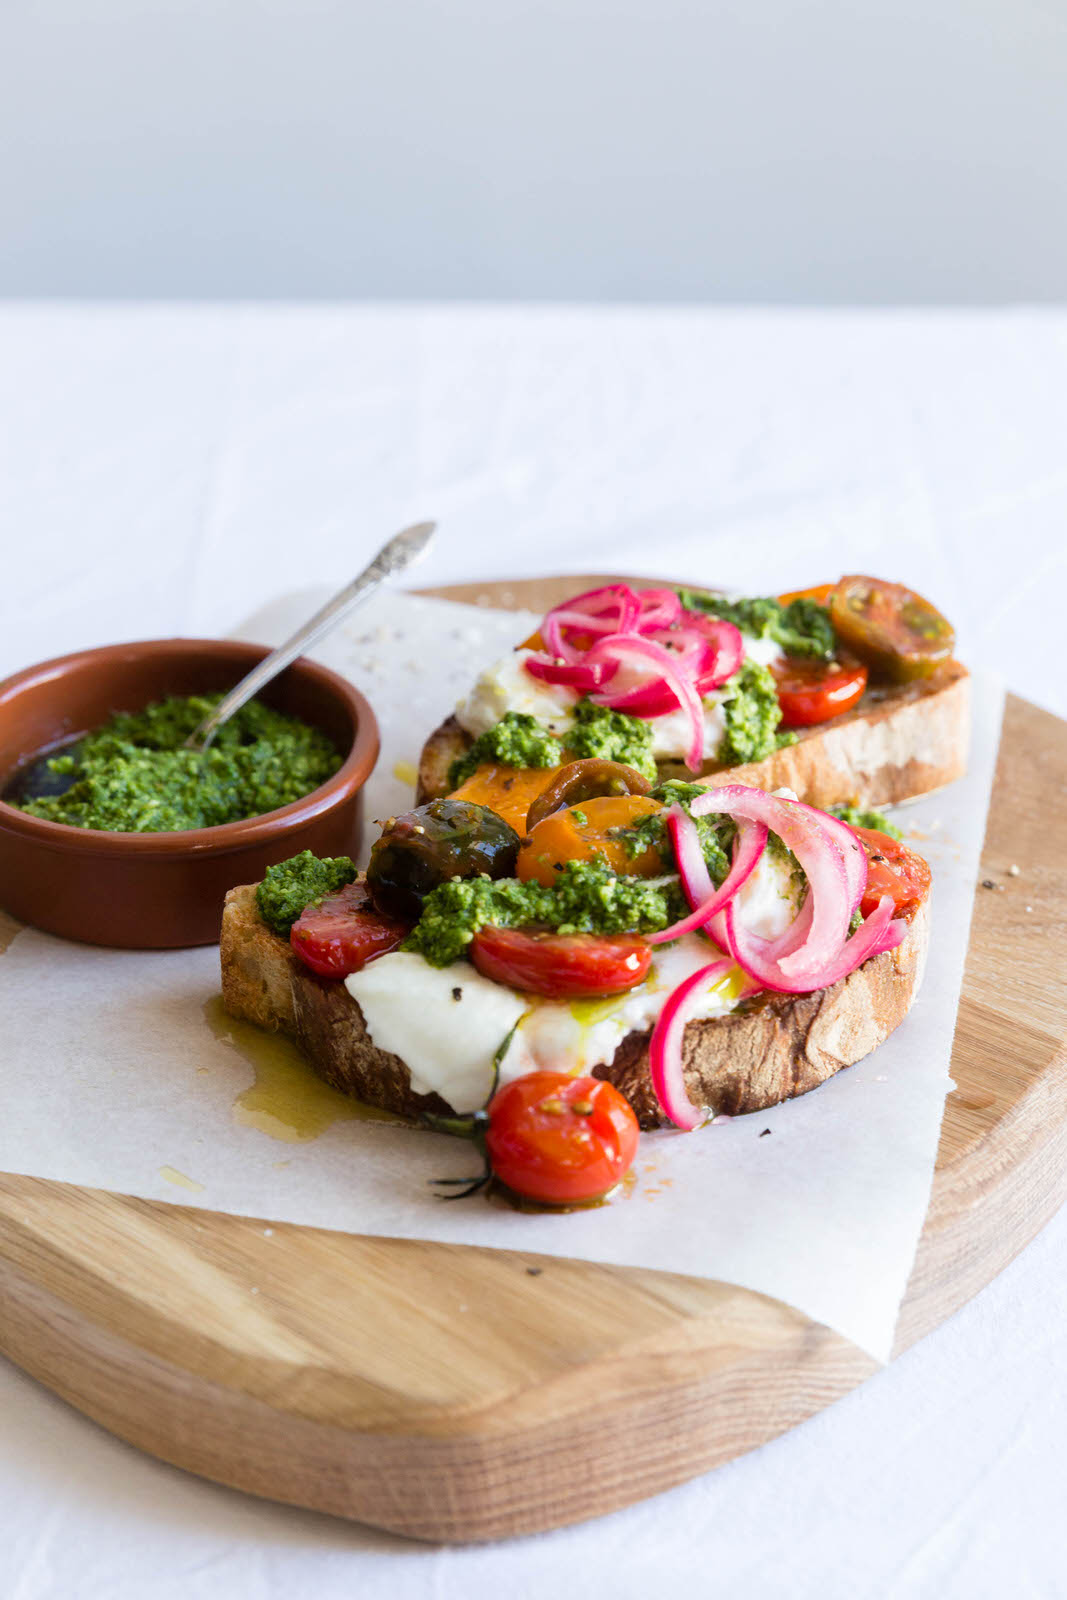 MICHELLE PARKIN PHOTOGRAPHY_BASIL PESTO_05-2017_OPEN CAPRESE SANDWICH_HIGH RES-9455.jpg